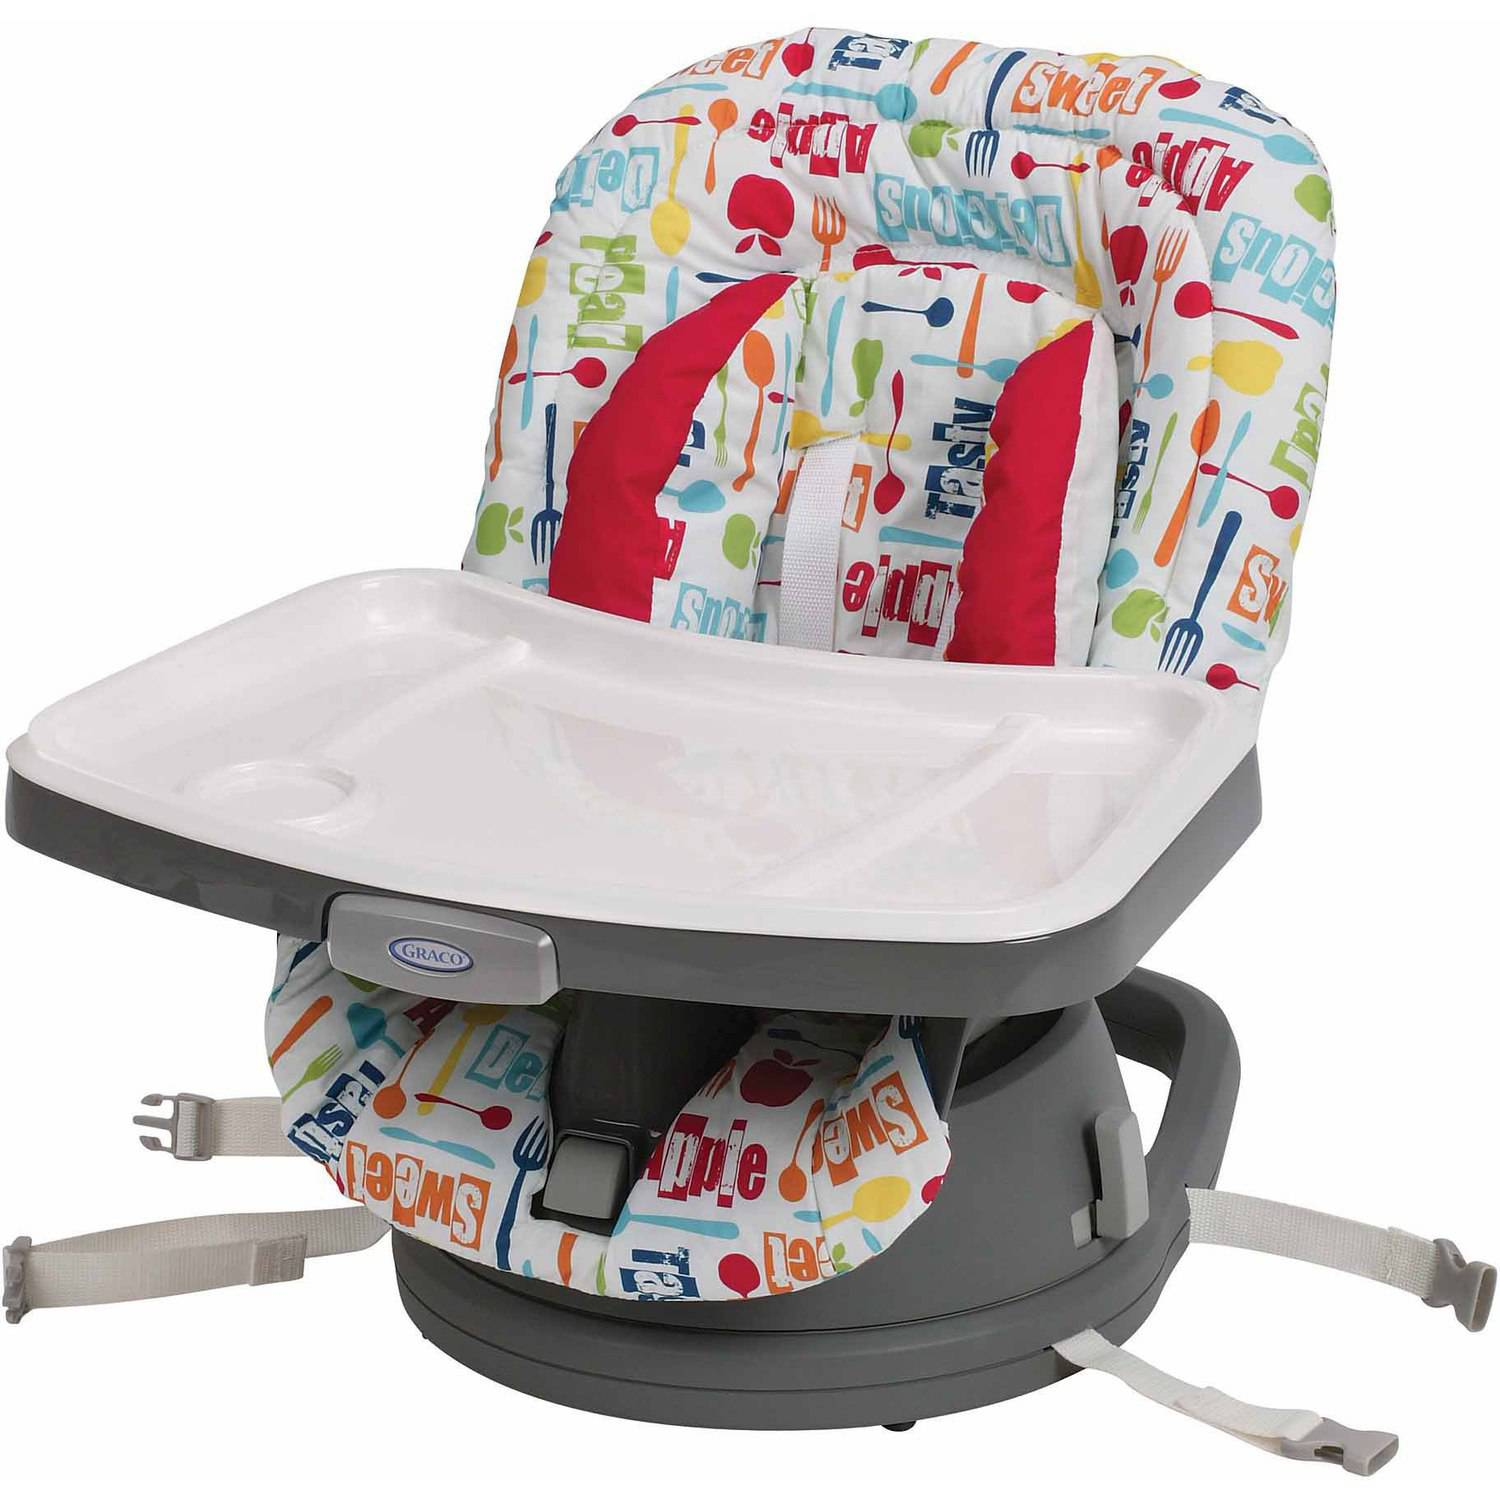 Graco SwiviSeat Booster Seat, Yummy